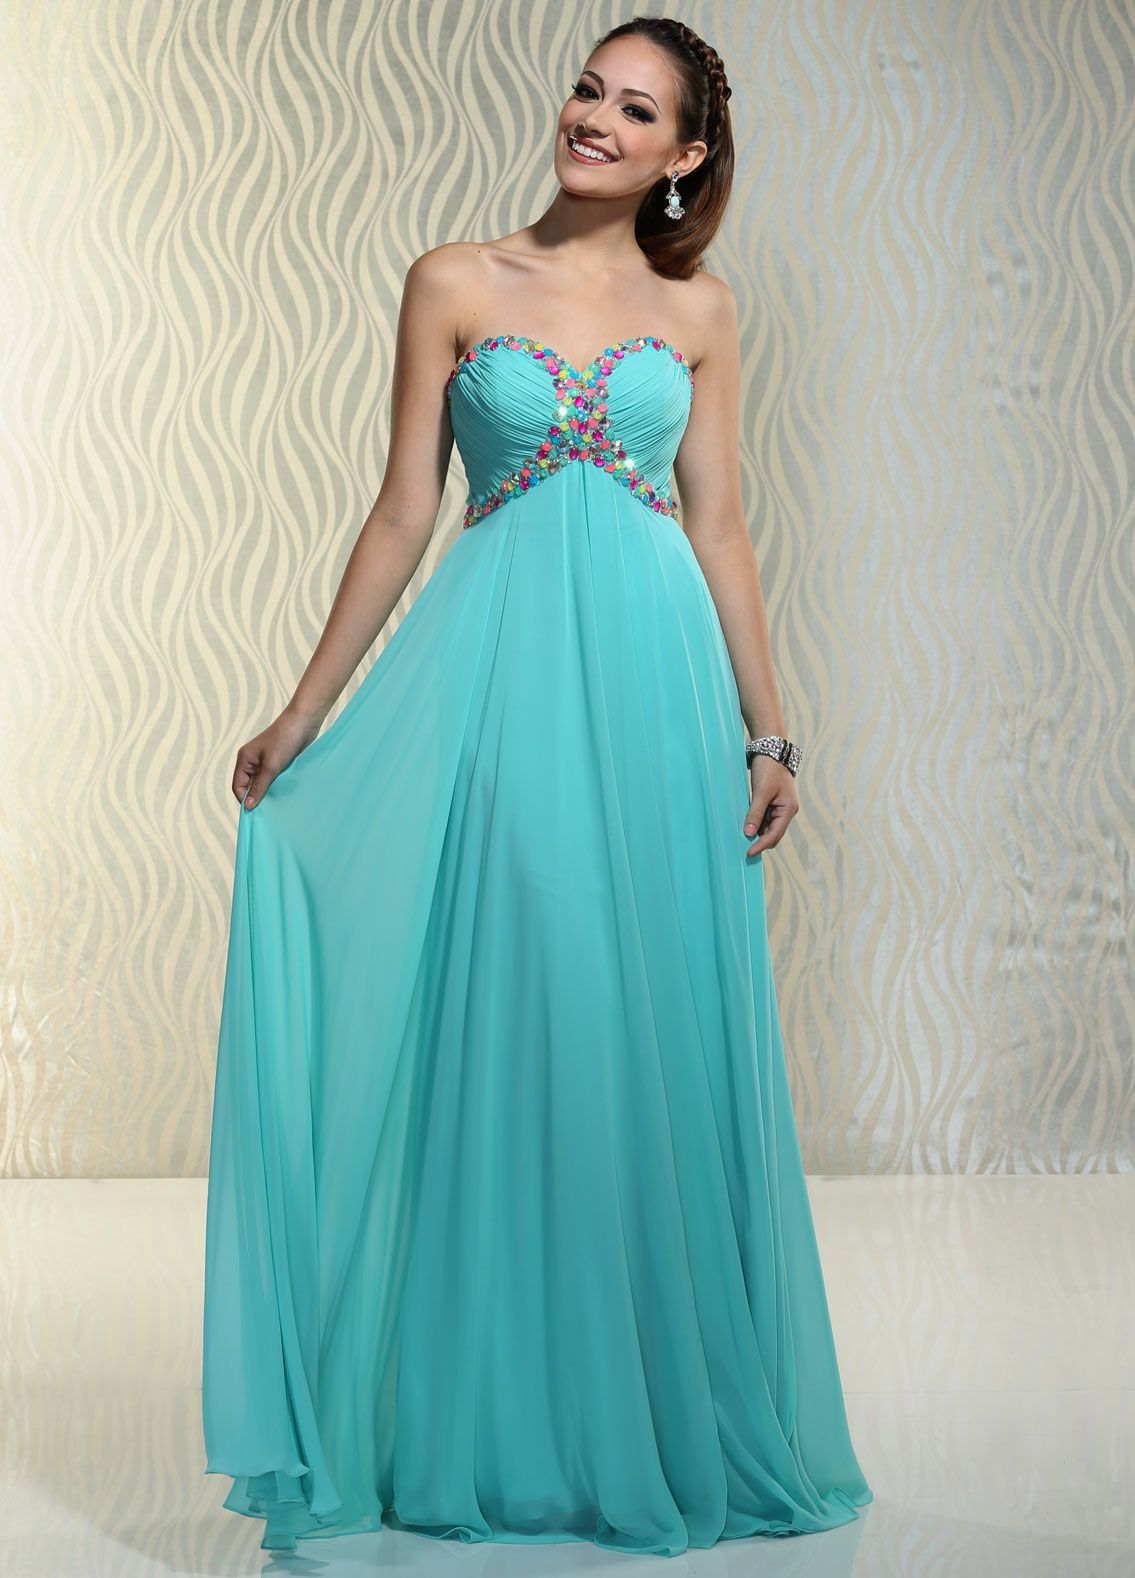 Prom Gowns by Xcite Prom | PROM | Pinterest | Prom and Gowns